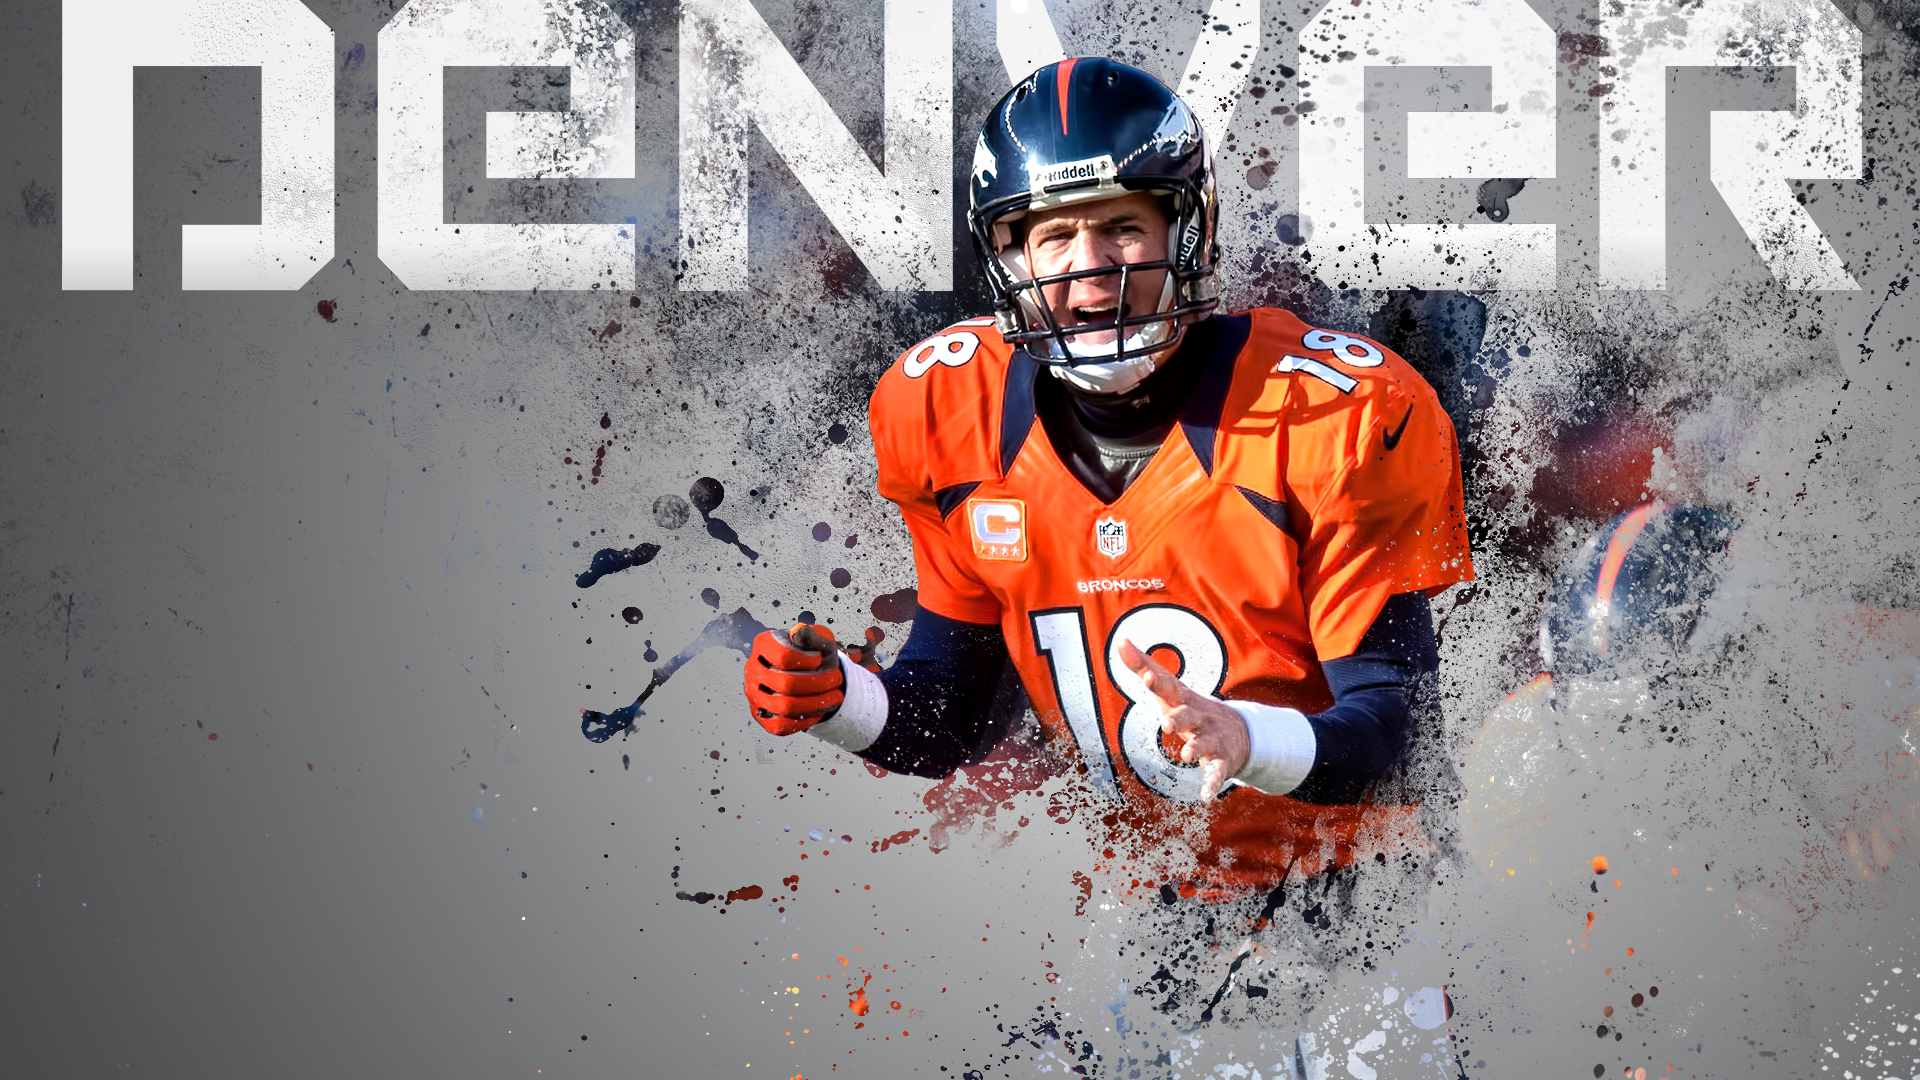 Peyton manning wallpaper athletize get to know your favorite peyton manning denver broncos wallpaper voltagebd Images